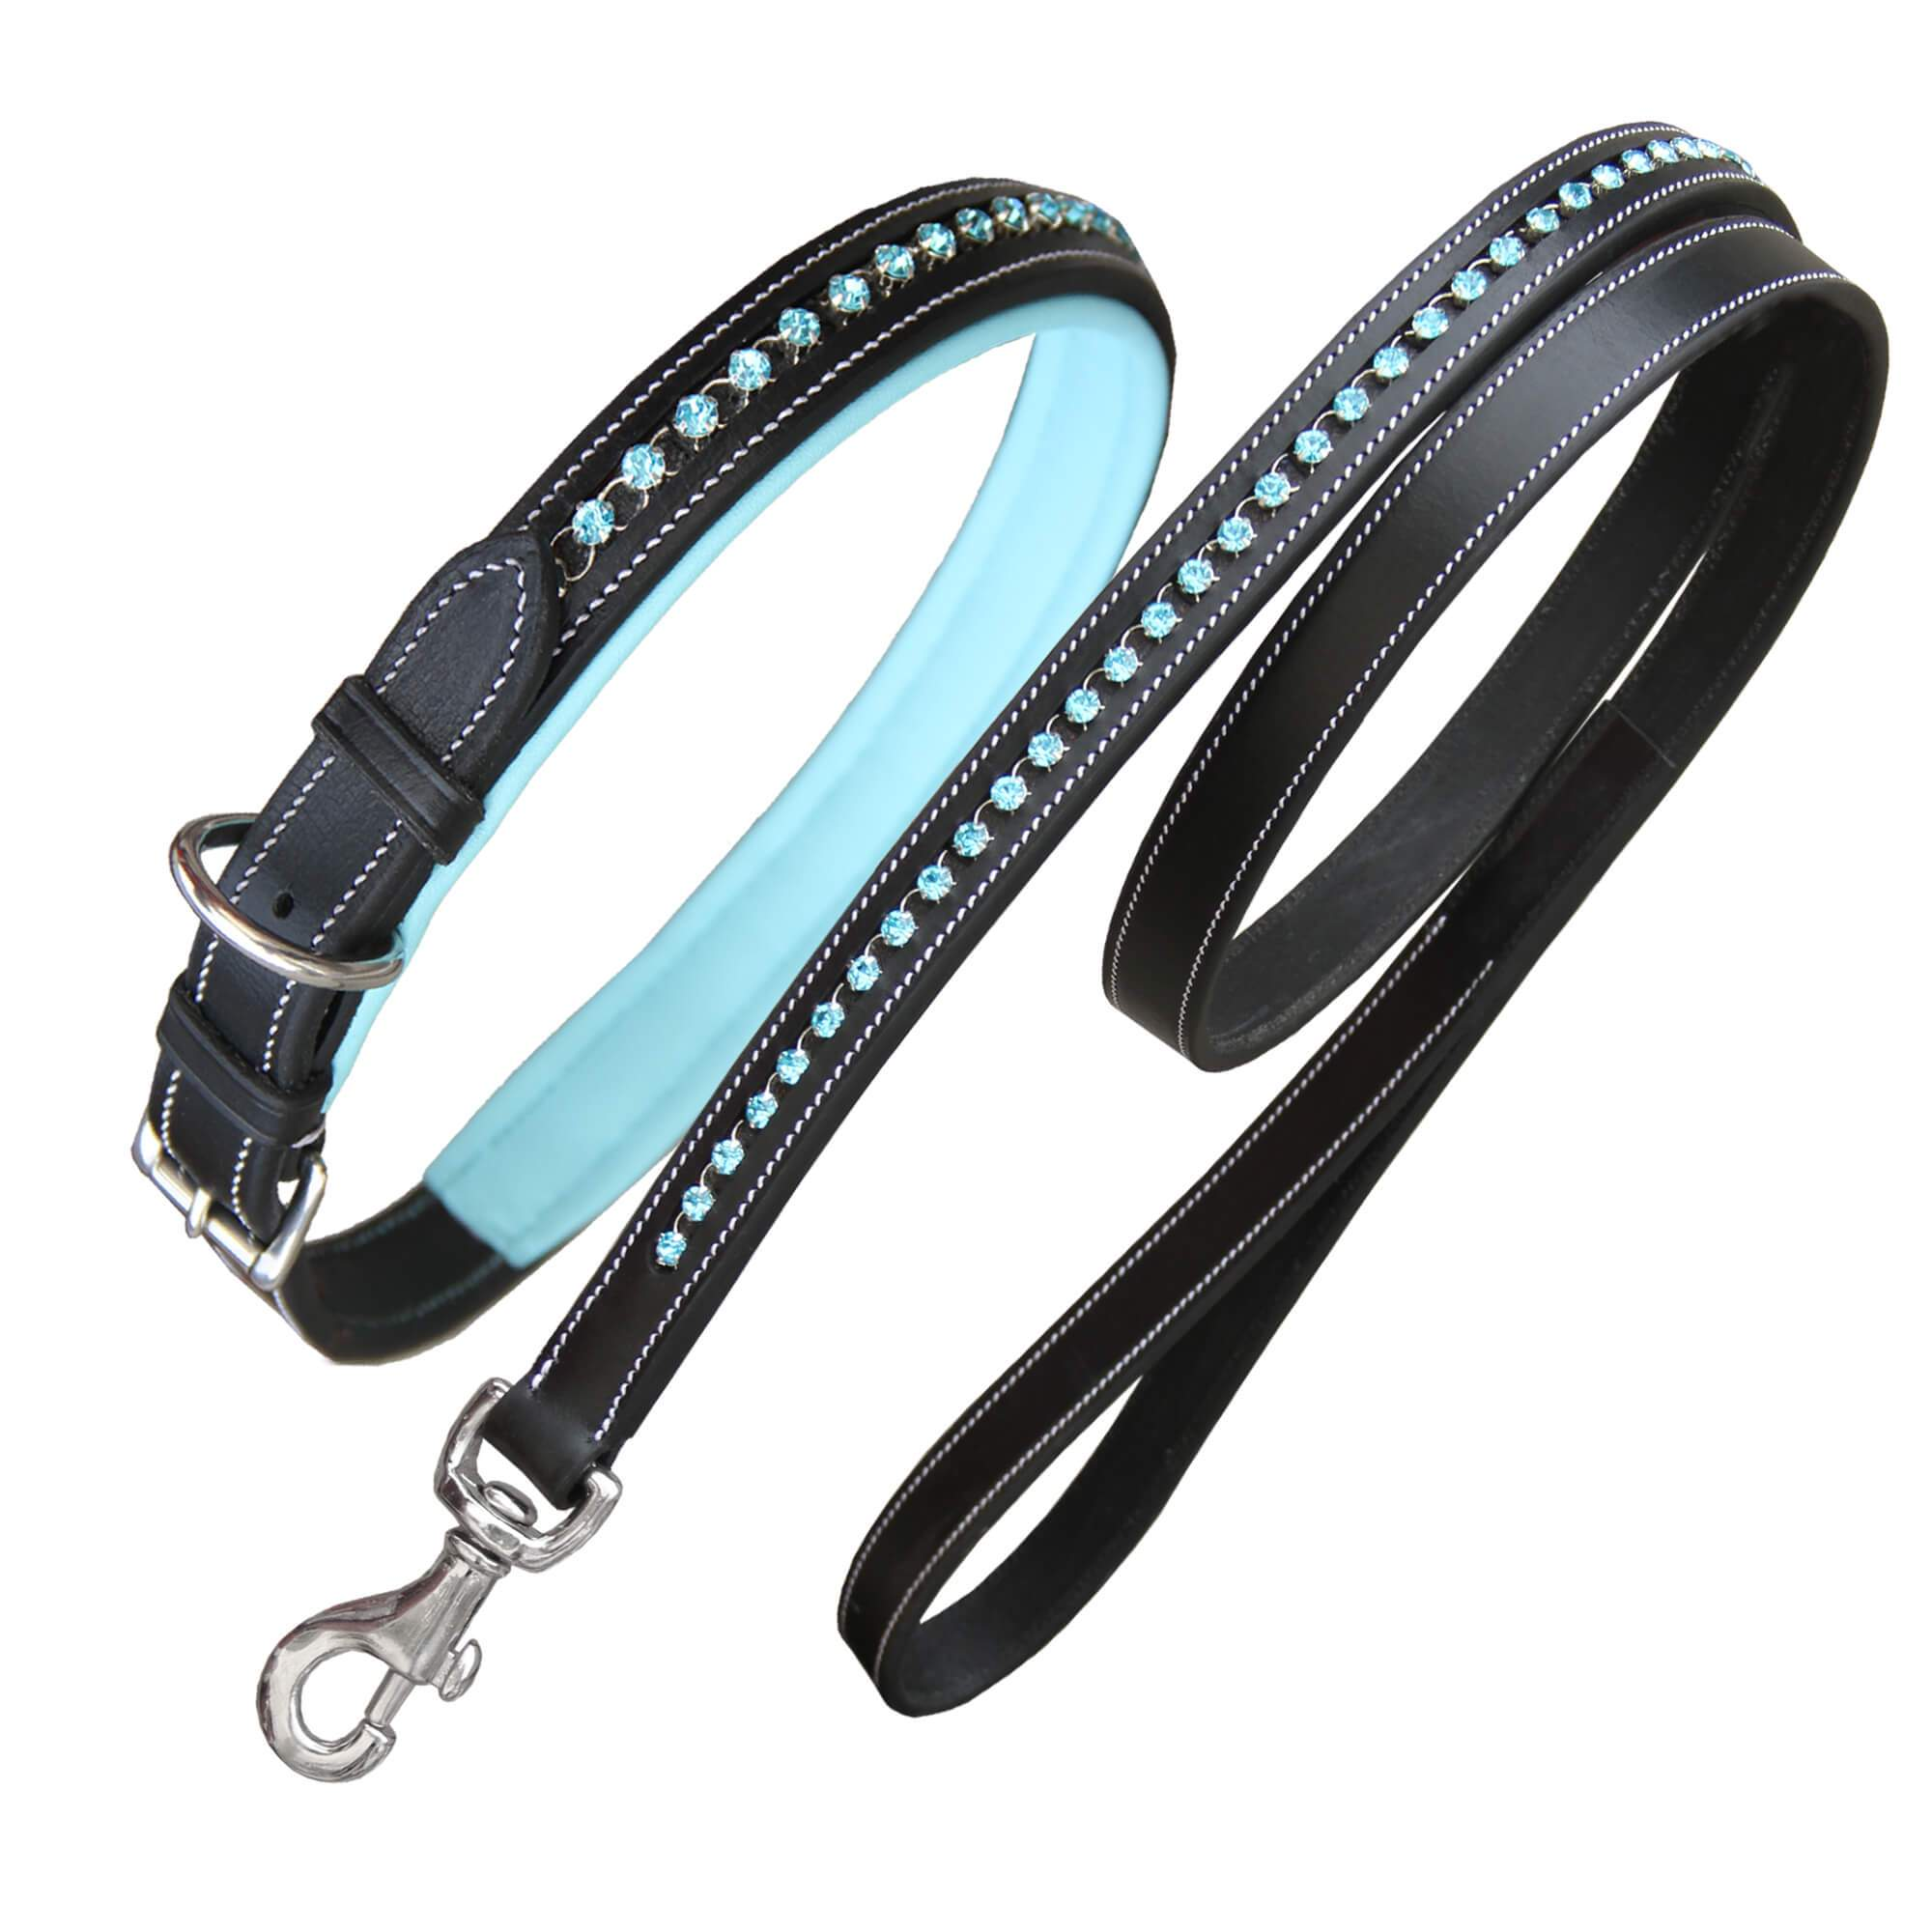 ExionPro Blue Bling Dog Collar With Lead-Bridles & Reins